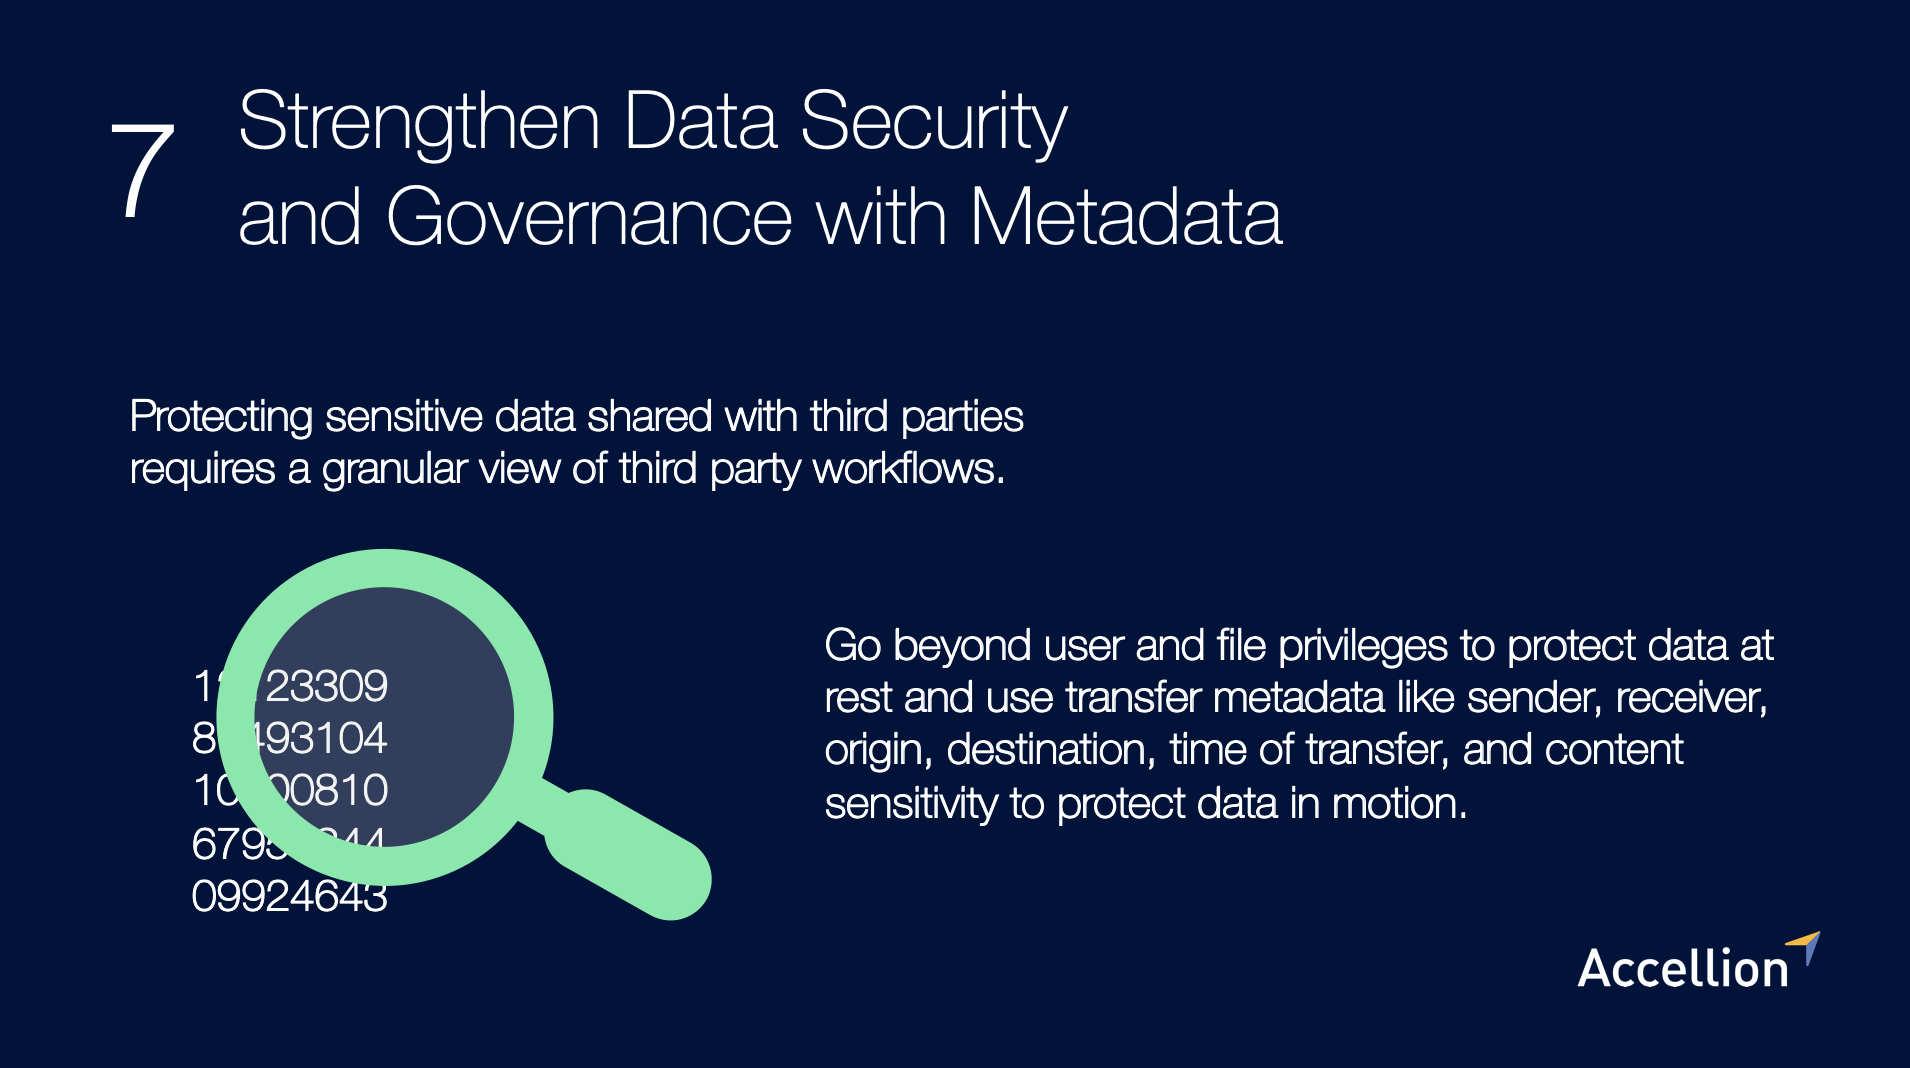 Strengthen data security and governance with metadata